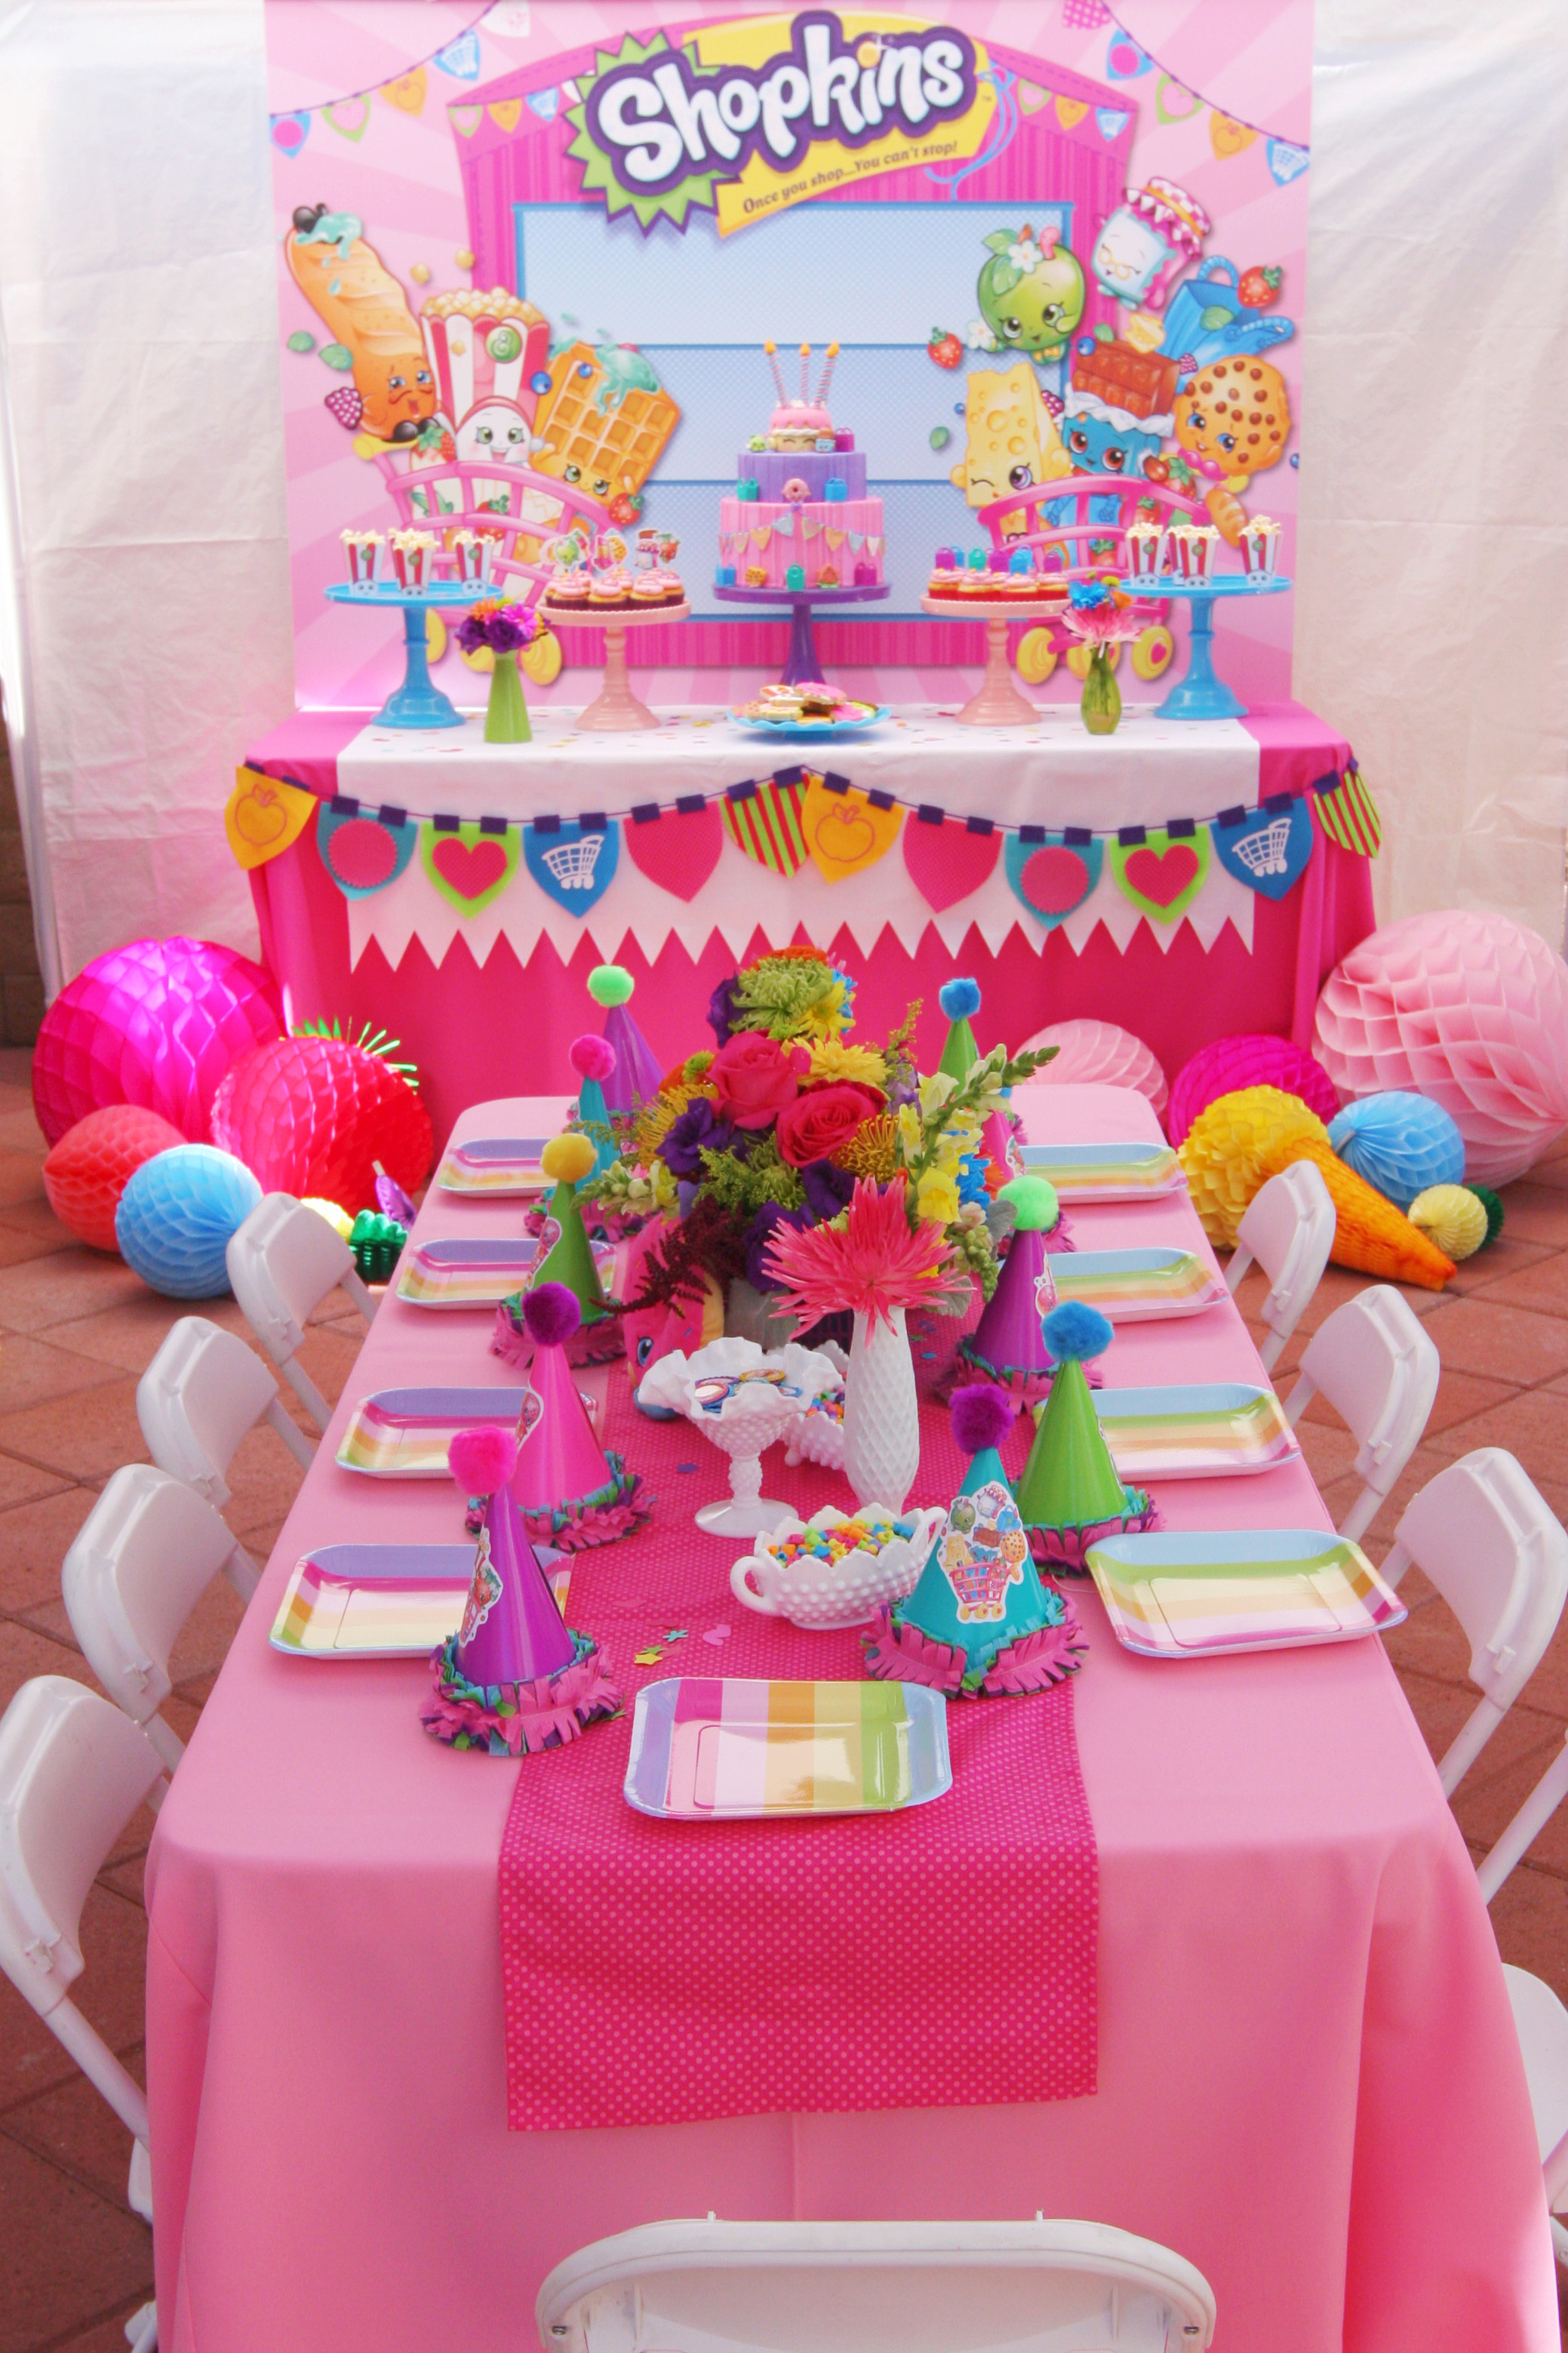 Best ideas about Birthday Party Ideas For Girls . Save or Pin Shopkins Birthday Party by Minted and Vintage Now.